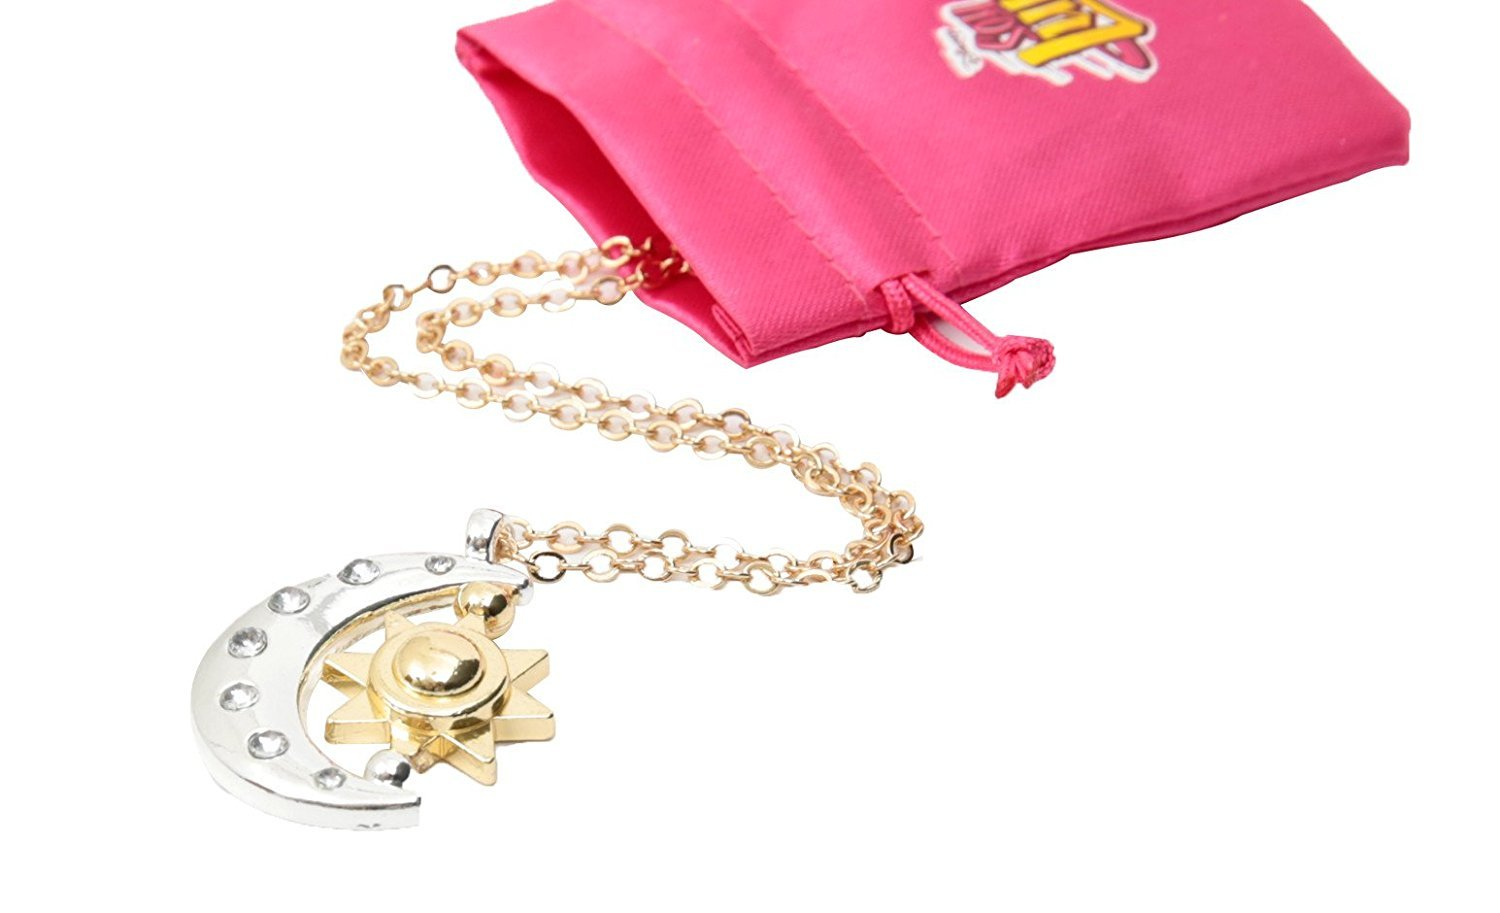 Soy Luna necklace with moon shaped pendant by Soy Luna (Image #1)